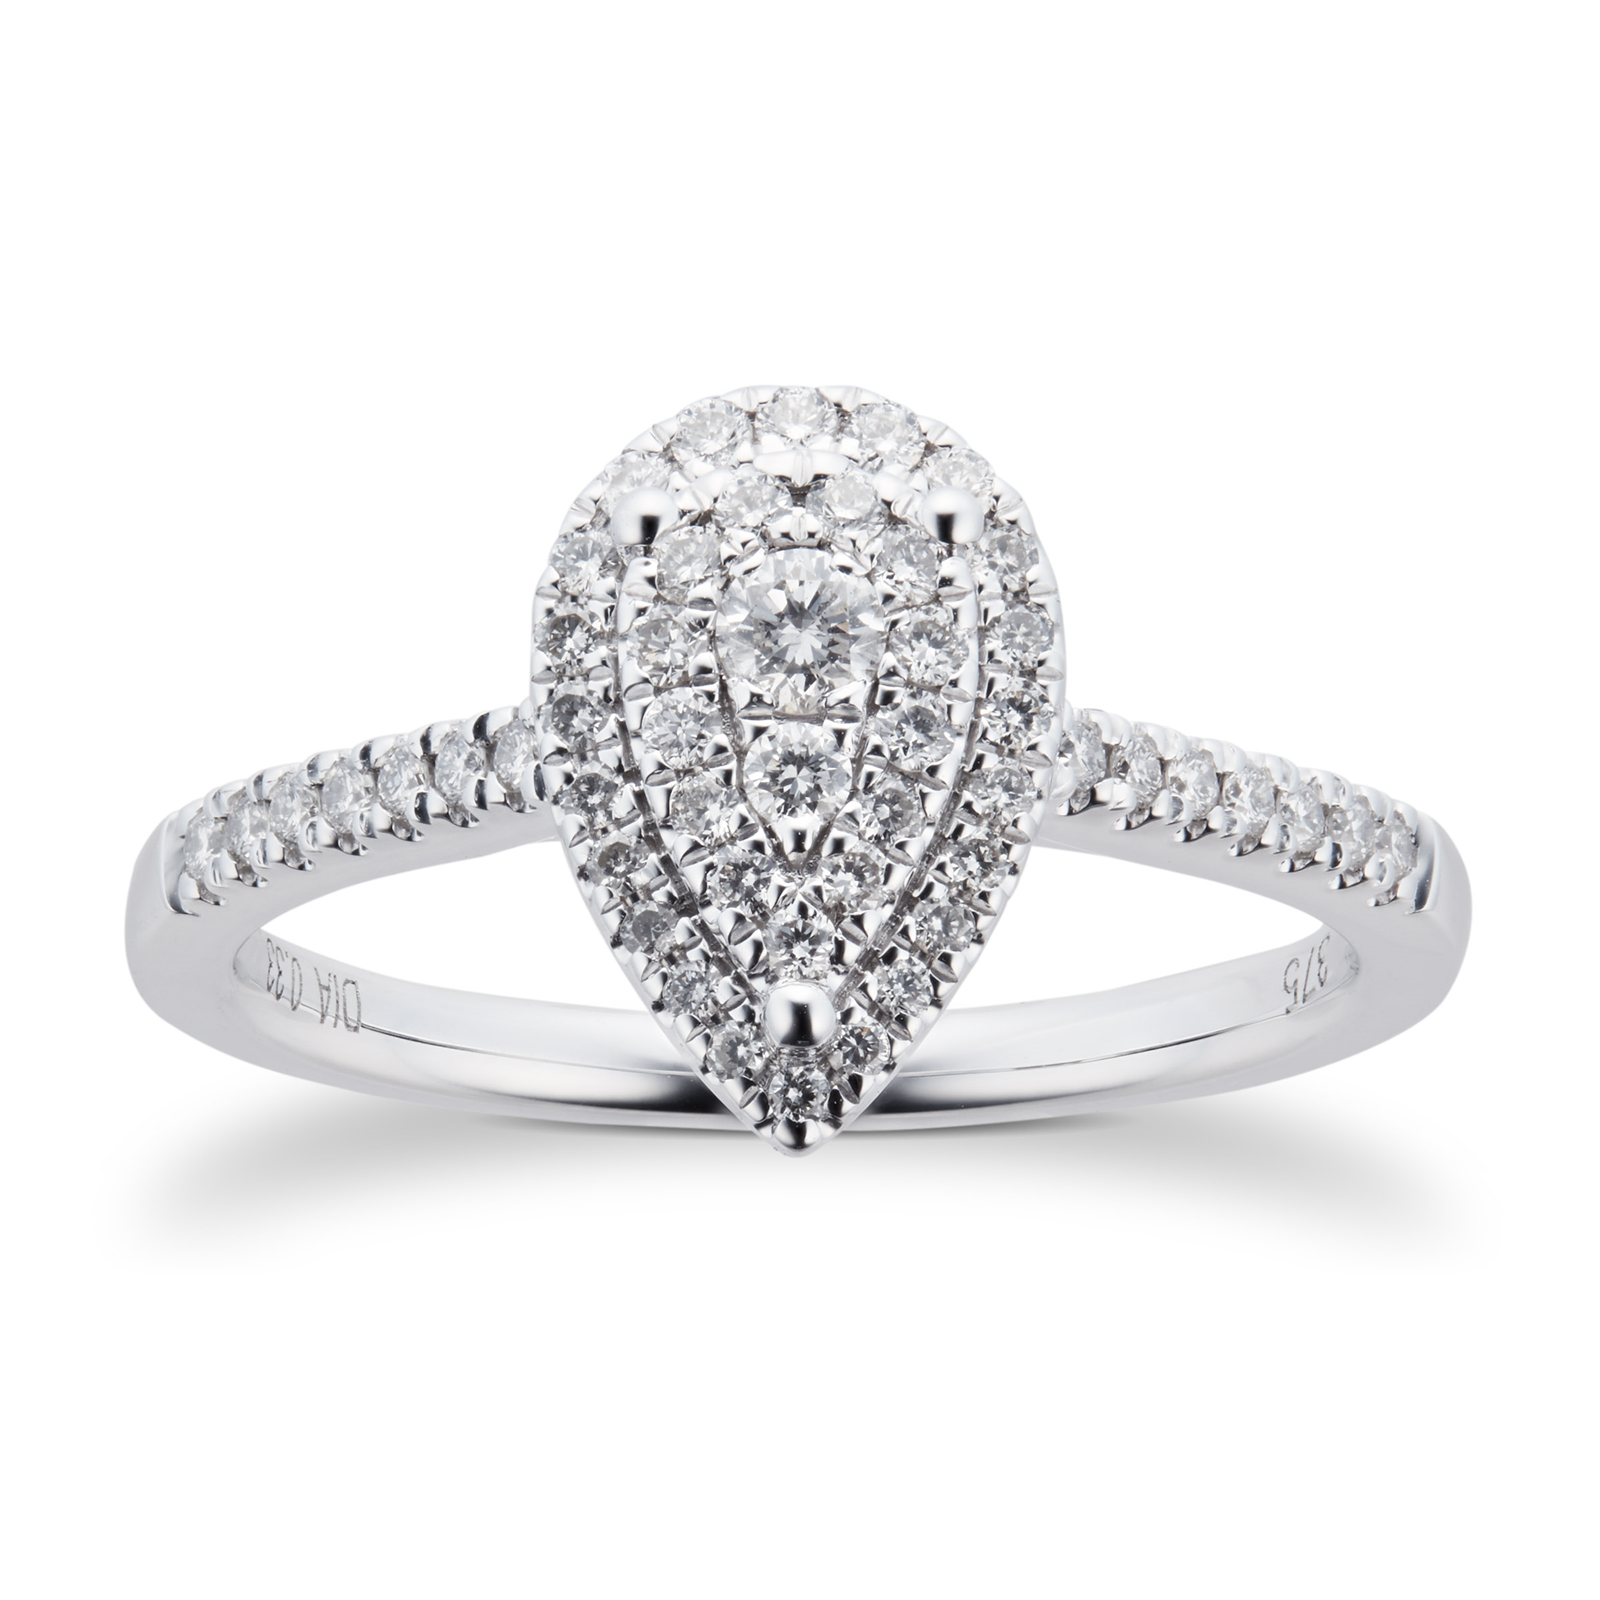 the pear engagement ring rings halo wedding finnies diamond platinum jewellers image